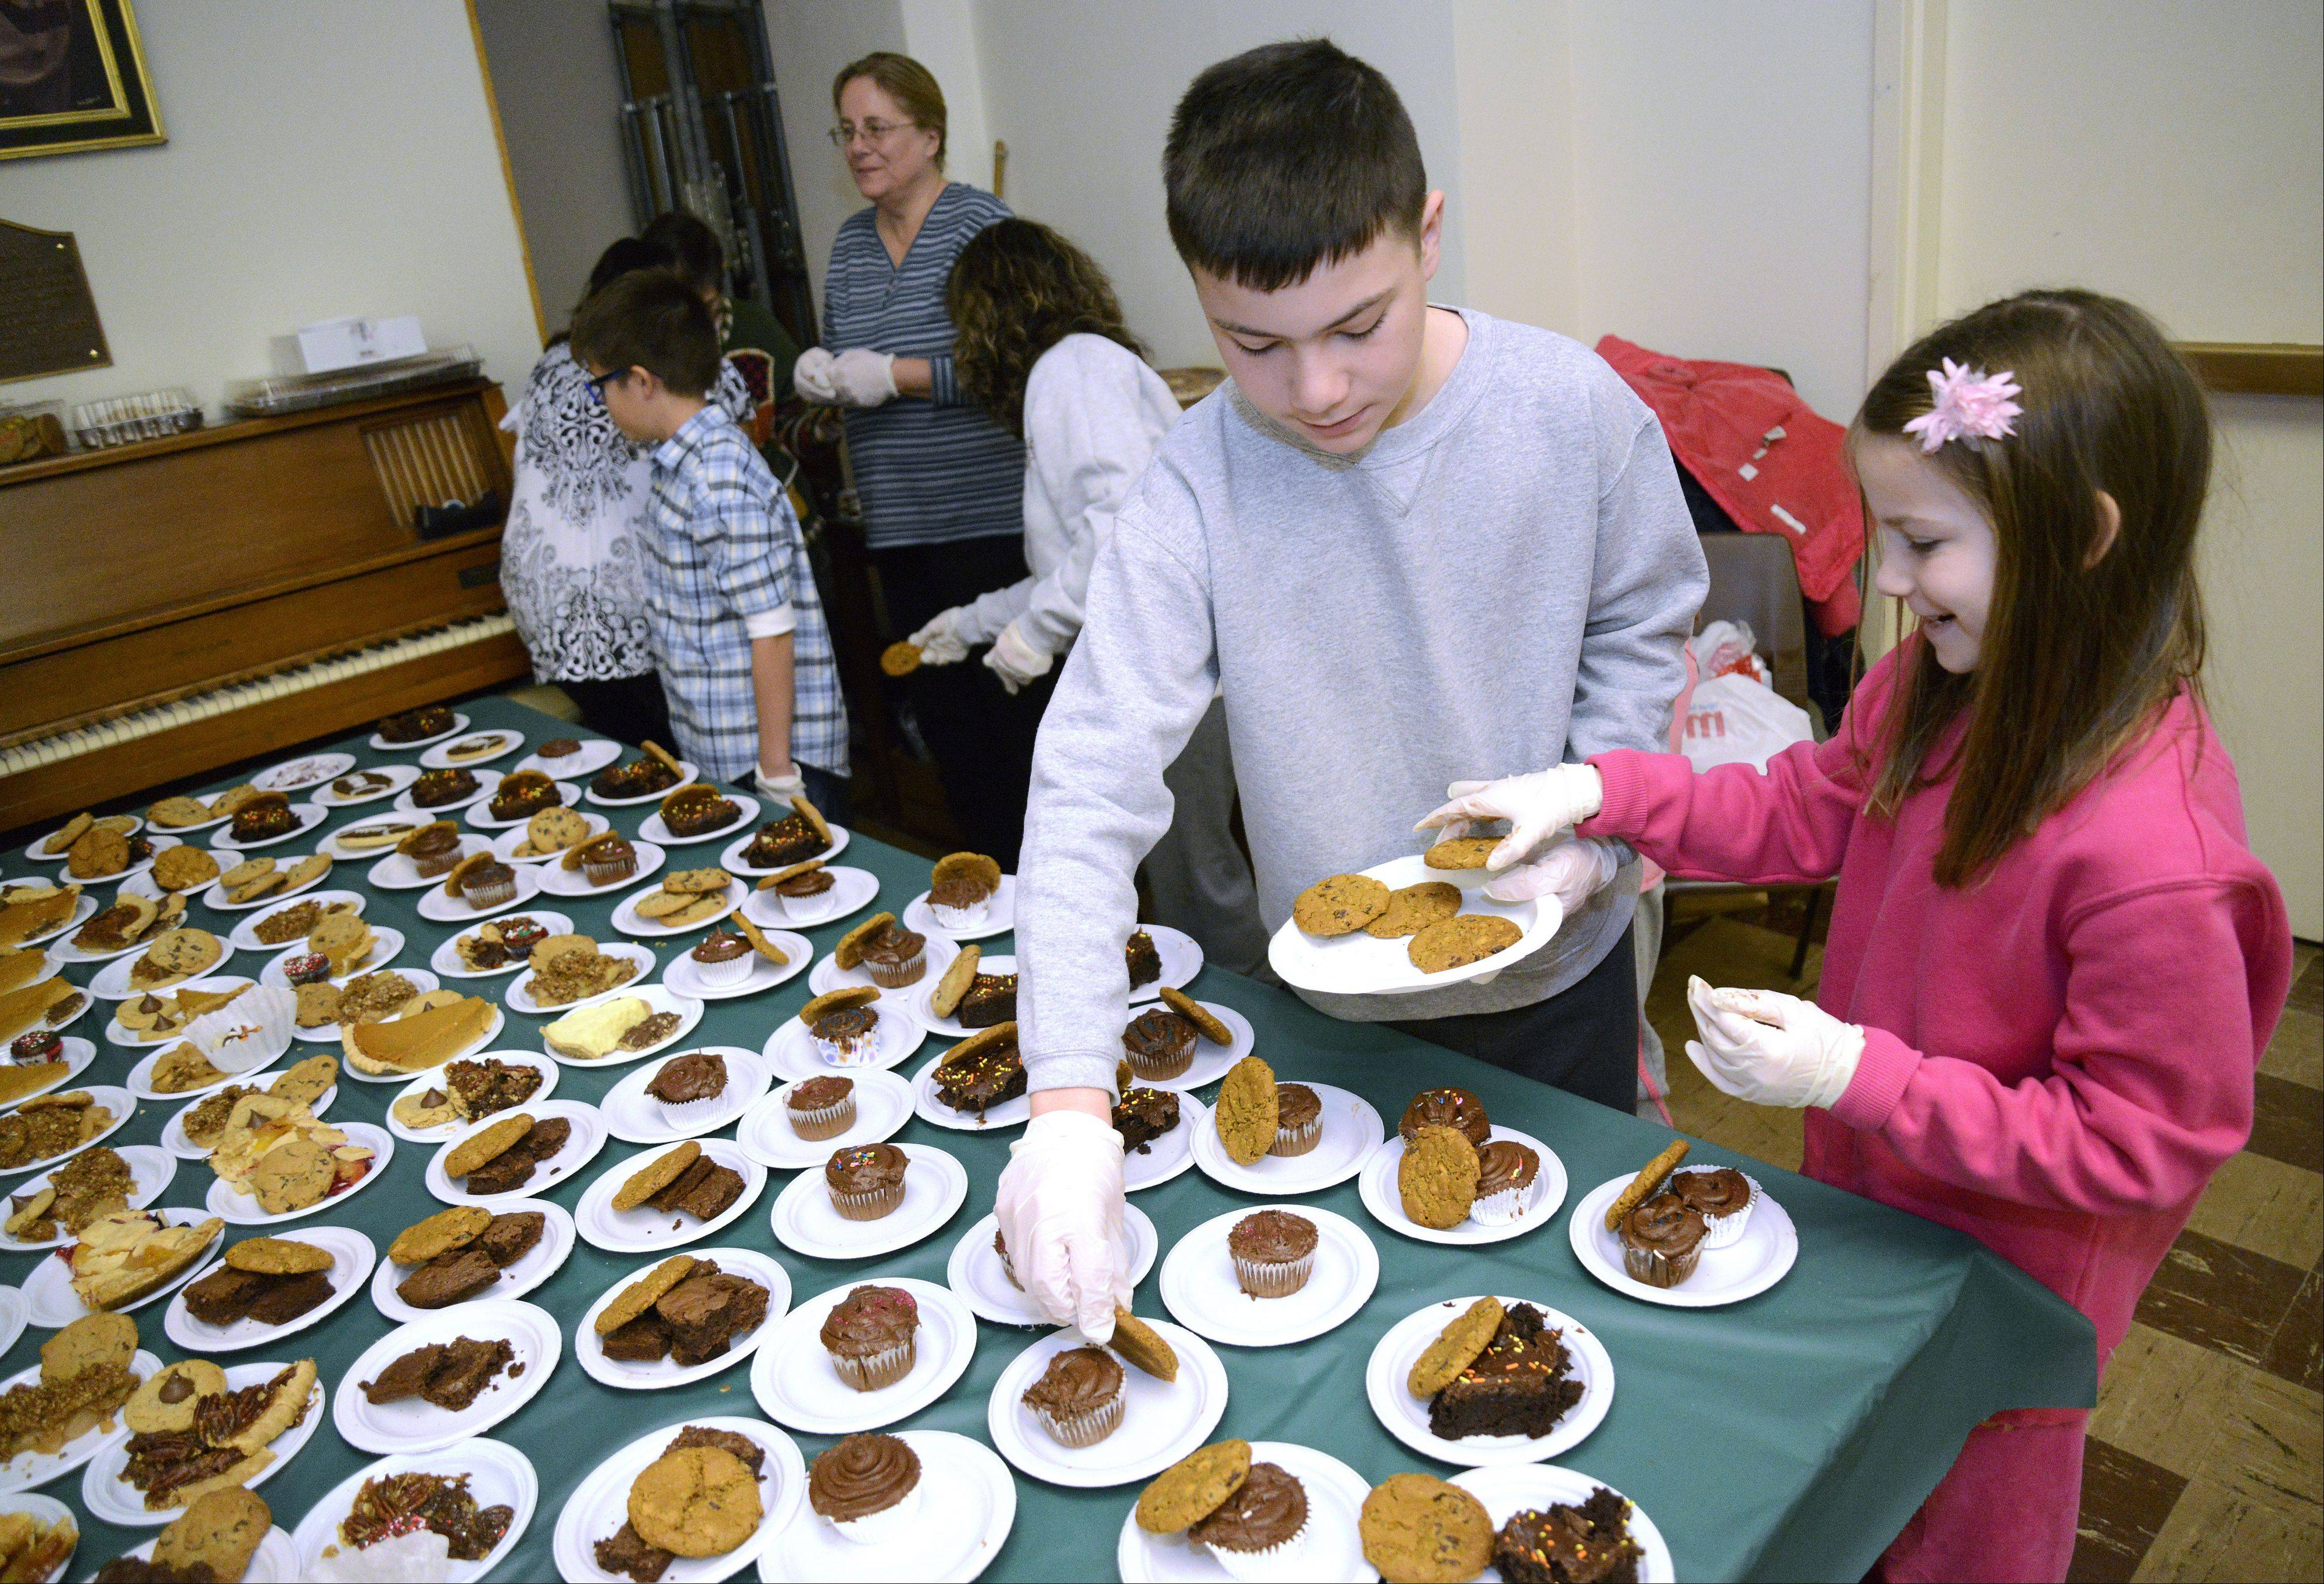 Shane Bonner, 12, of Hoffman Estates, and his sister, Angelina, 10, make dessert plates for the Elgin Community Thanksgiving Dinner at the First United Methodist Church on Thanksgiving Day. Shane and Angelina made brownies and cupcakes themselves to bring to the event. Shane will celebrate his bar mitzvah next year and this was his way to give to the community in preparation.